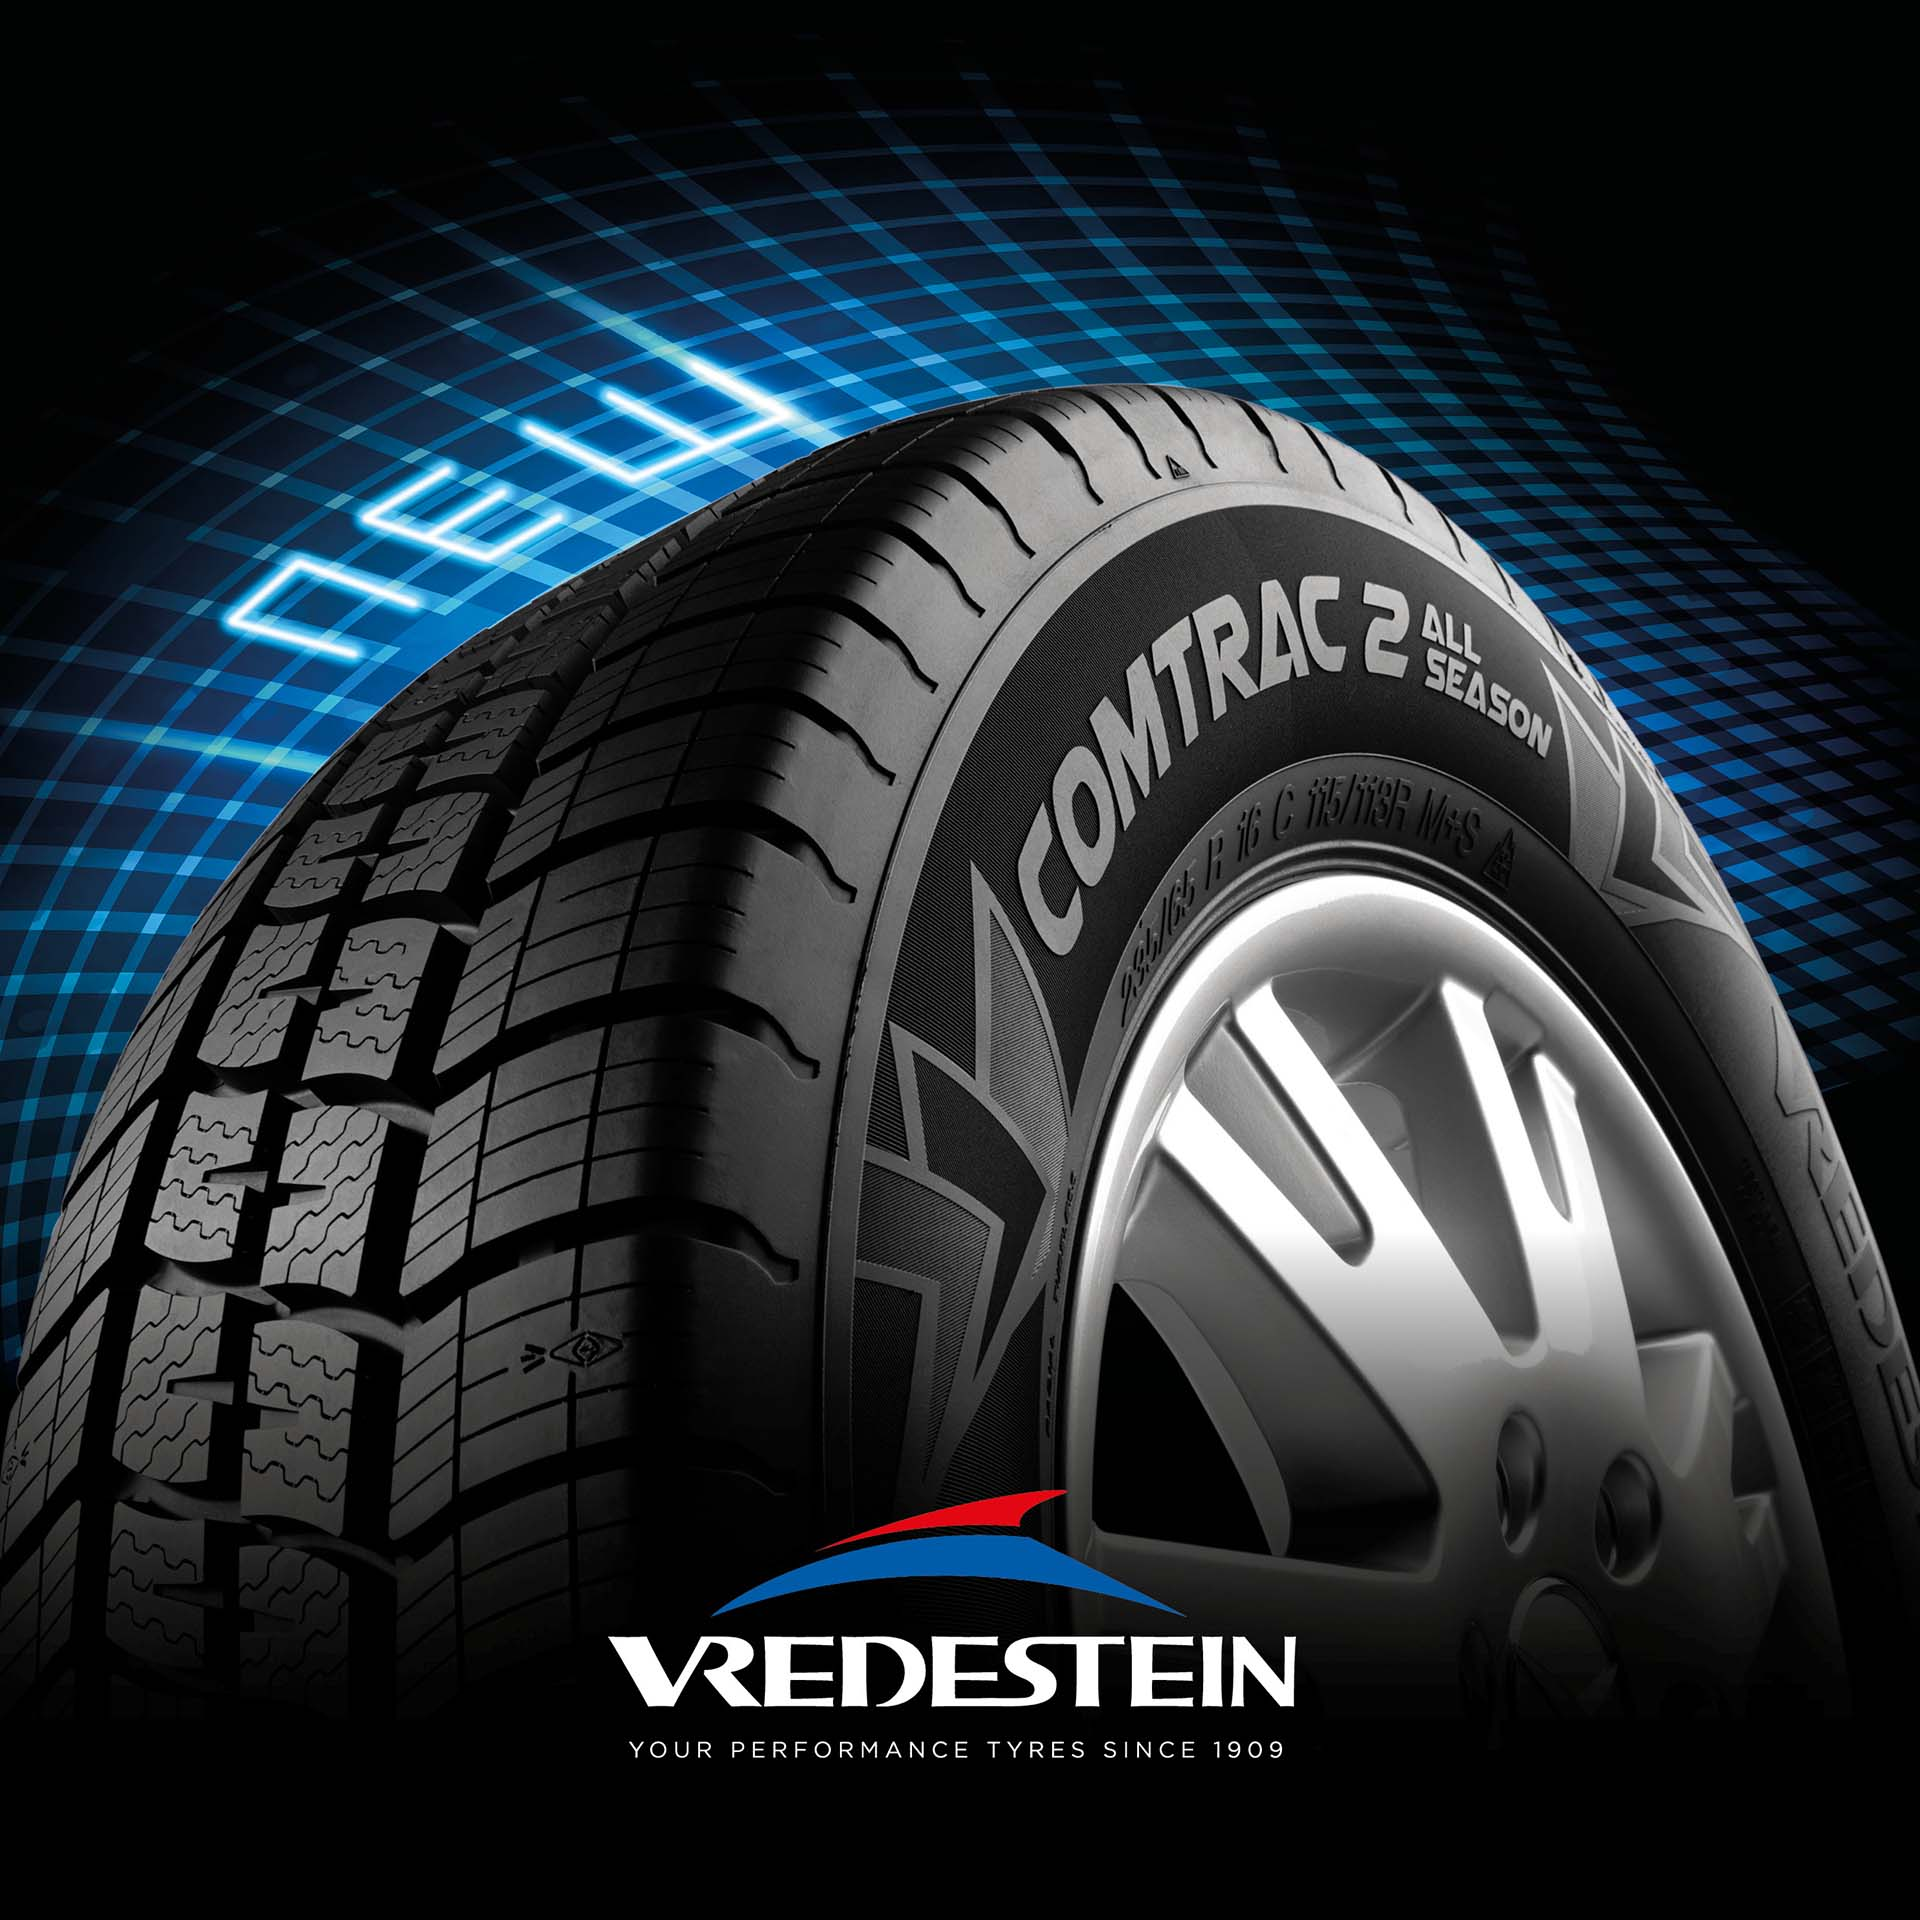 Vredestein Comtrac 2 All Season